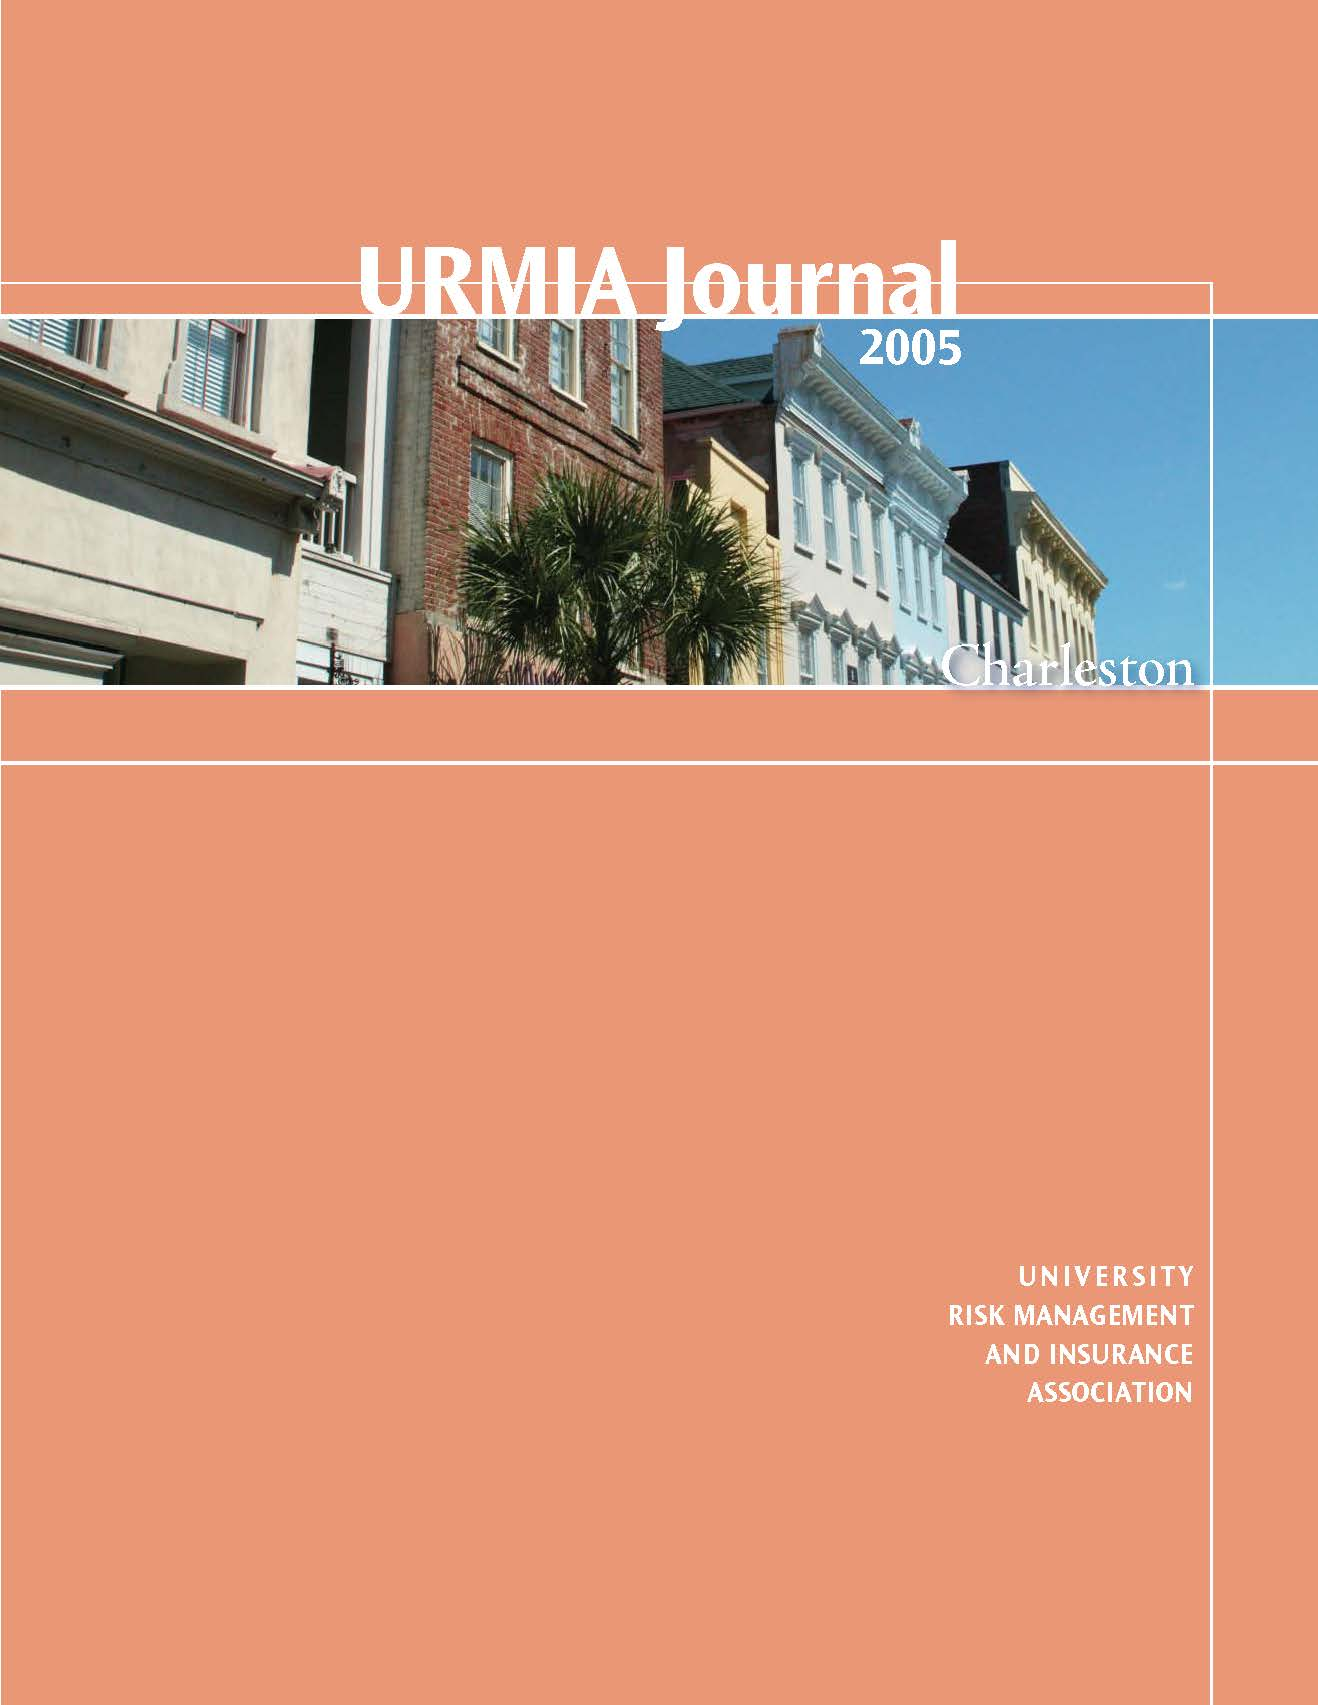 2005 URMIA Journal